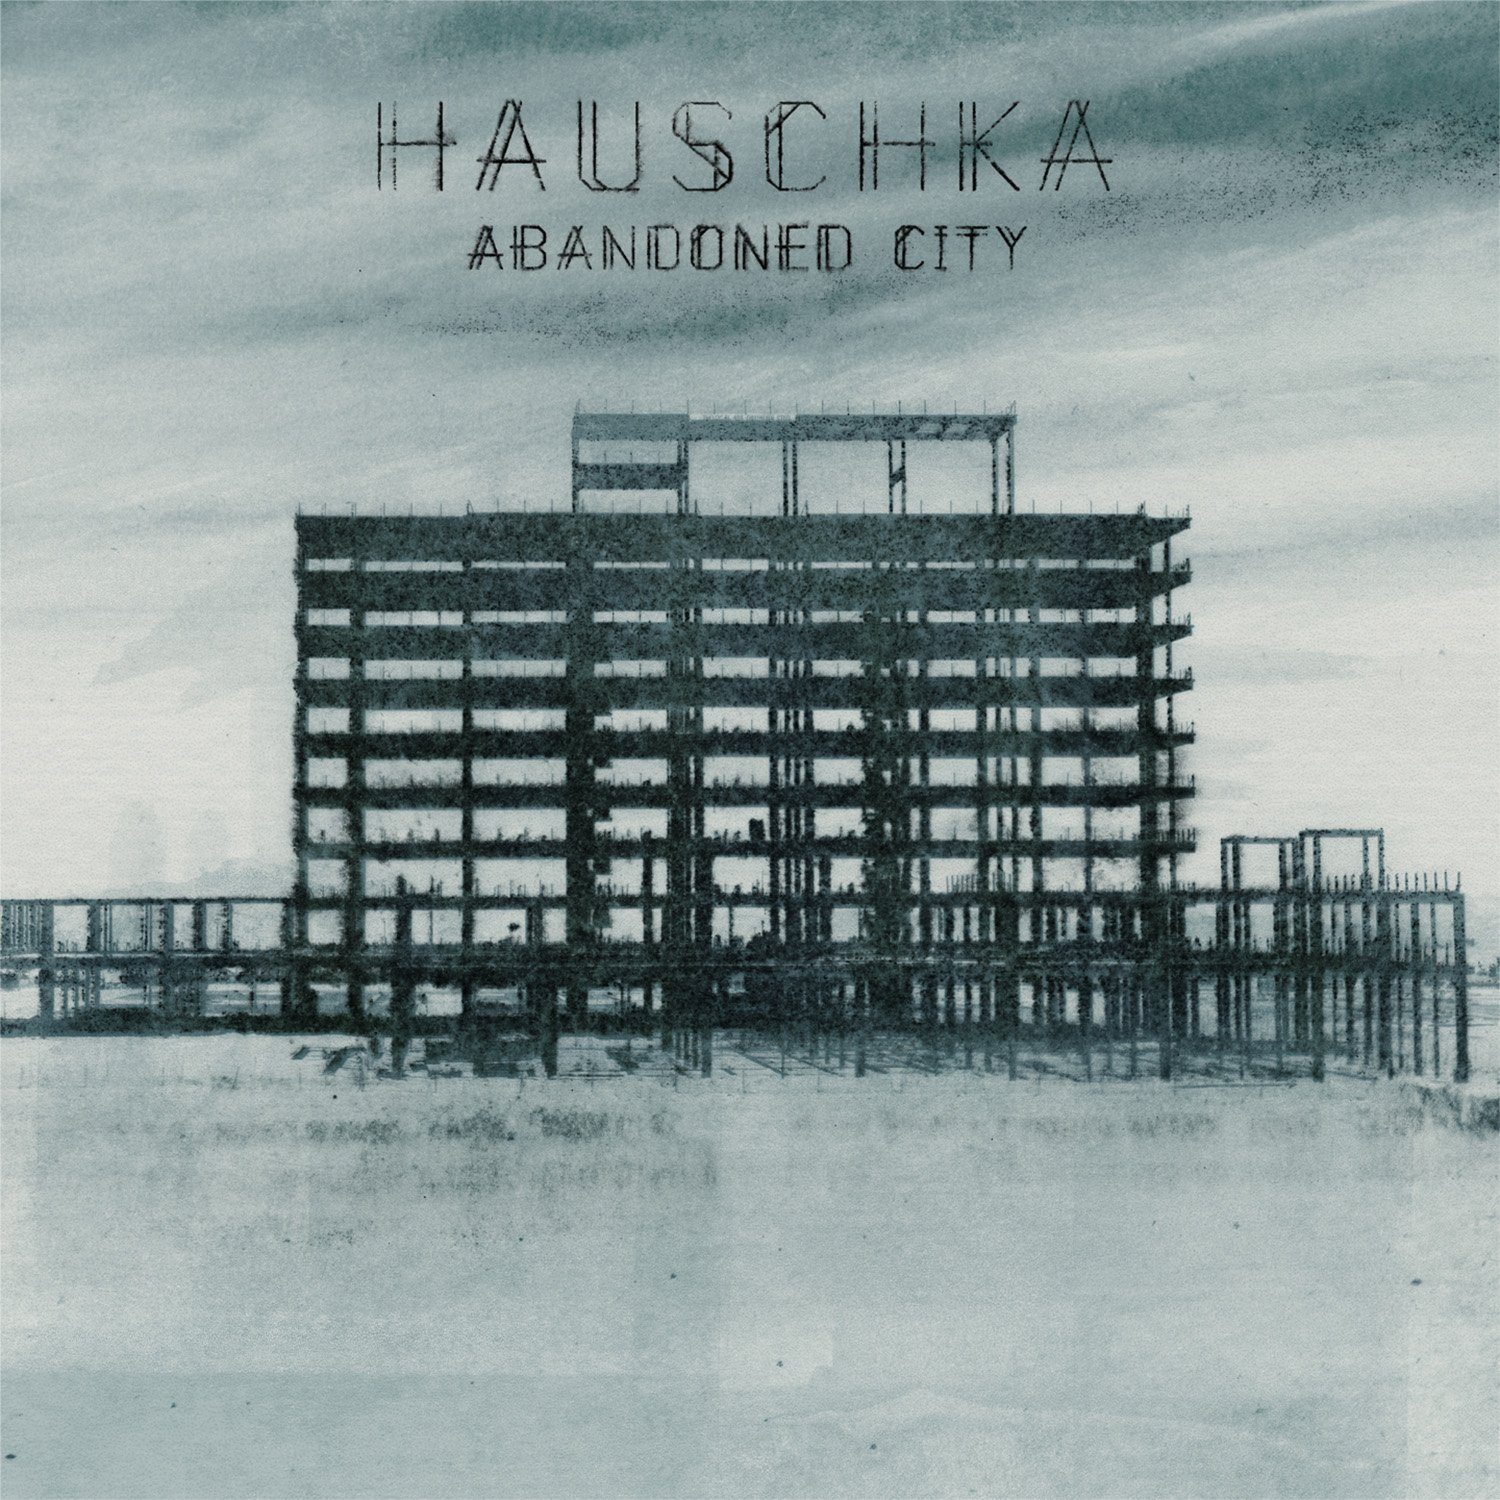 Hauschka《Abandoned City》